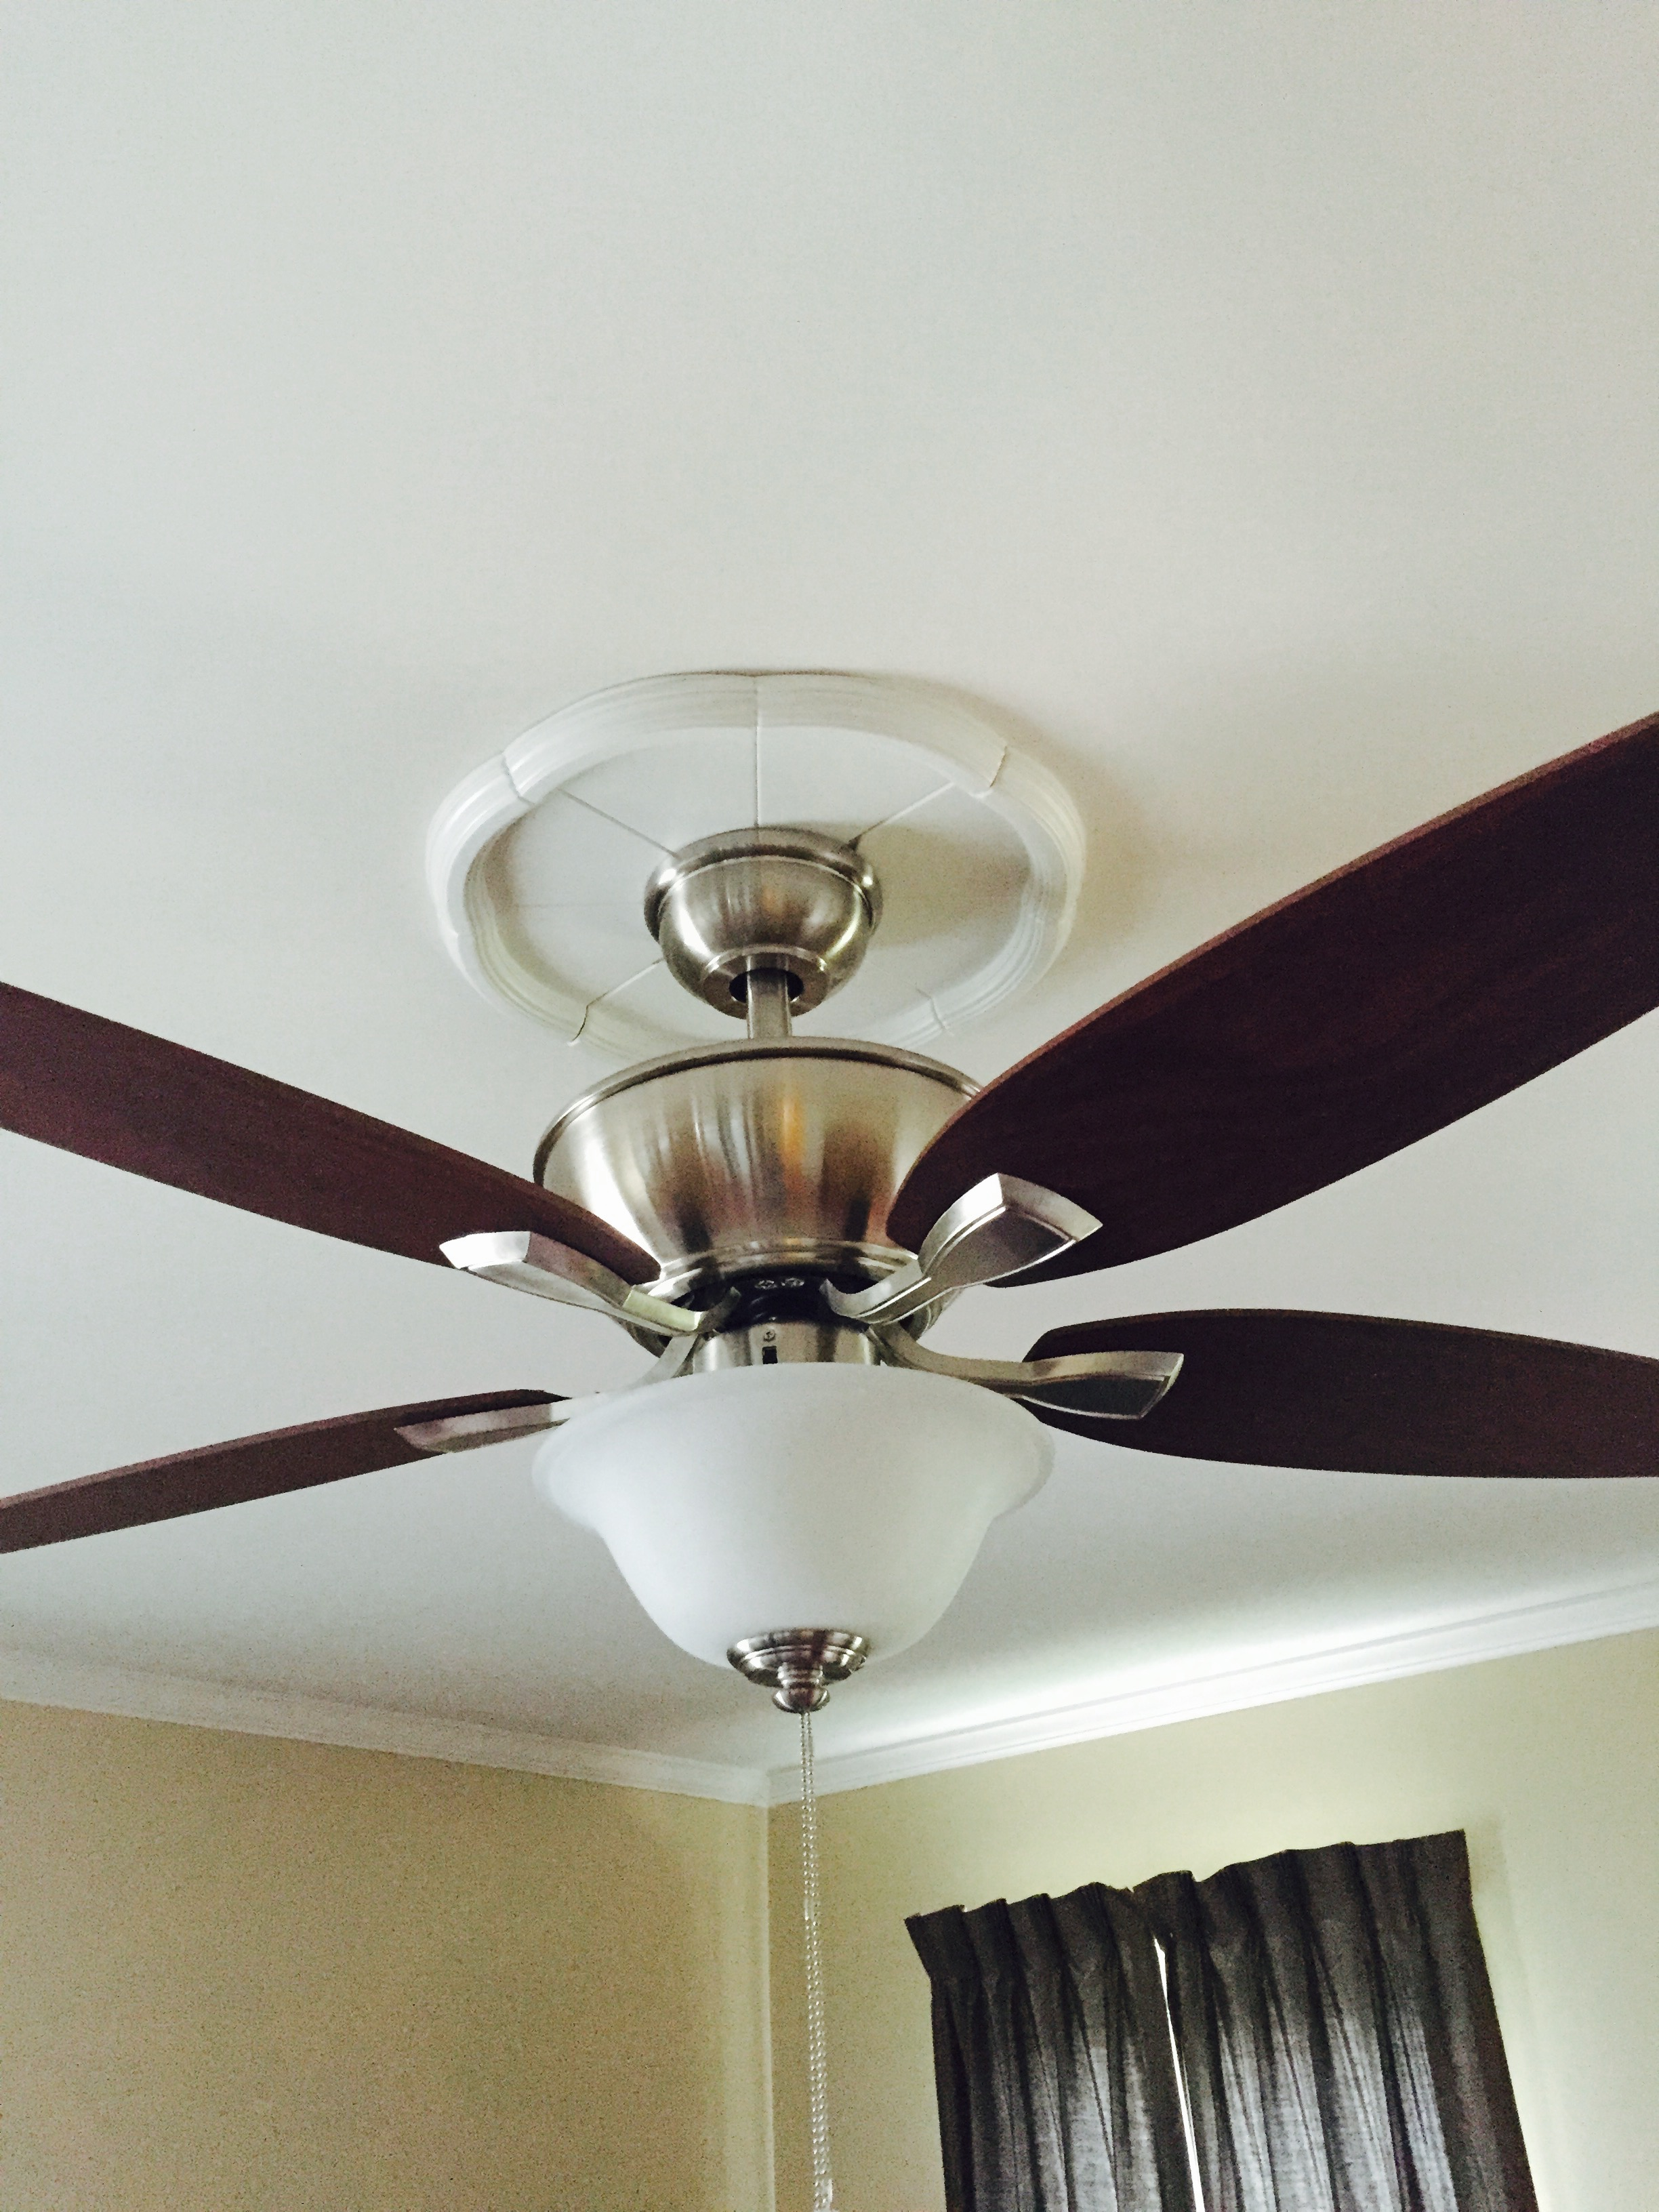 Fan Installation Electrician Services Philadelphia Pa